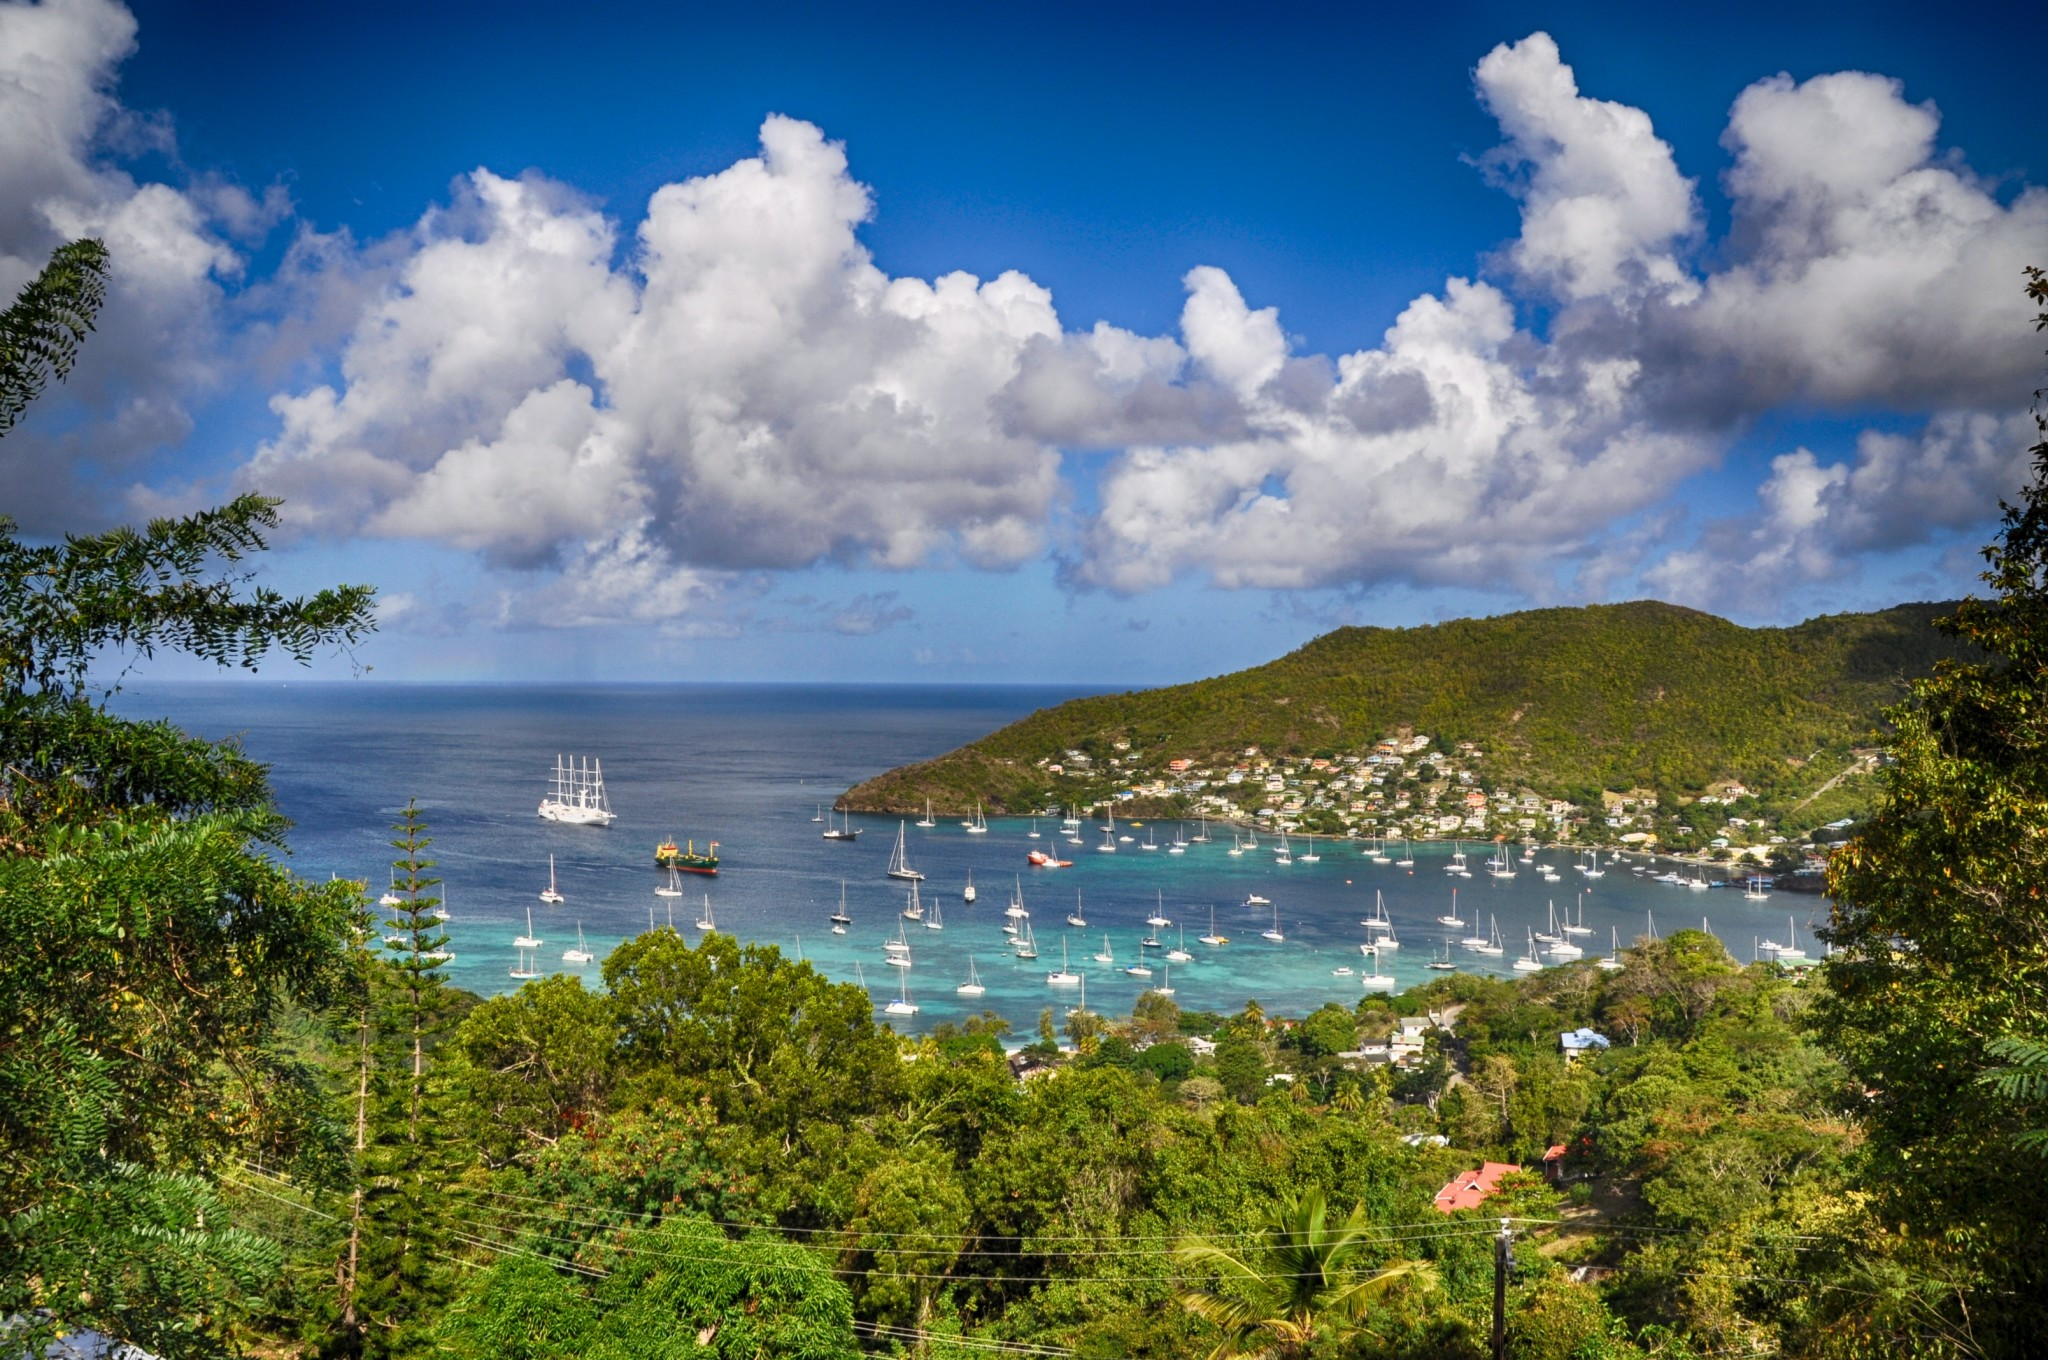 Admiralty Bay and Port Elizabeth in Bequia